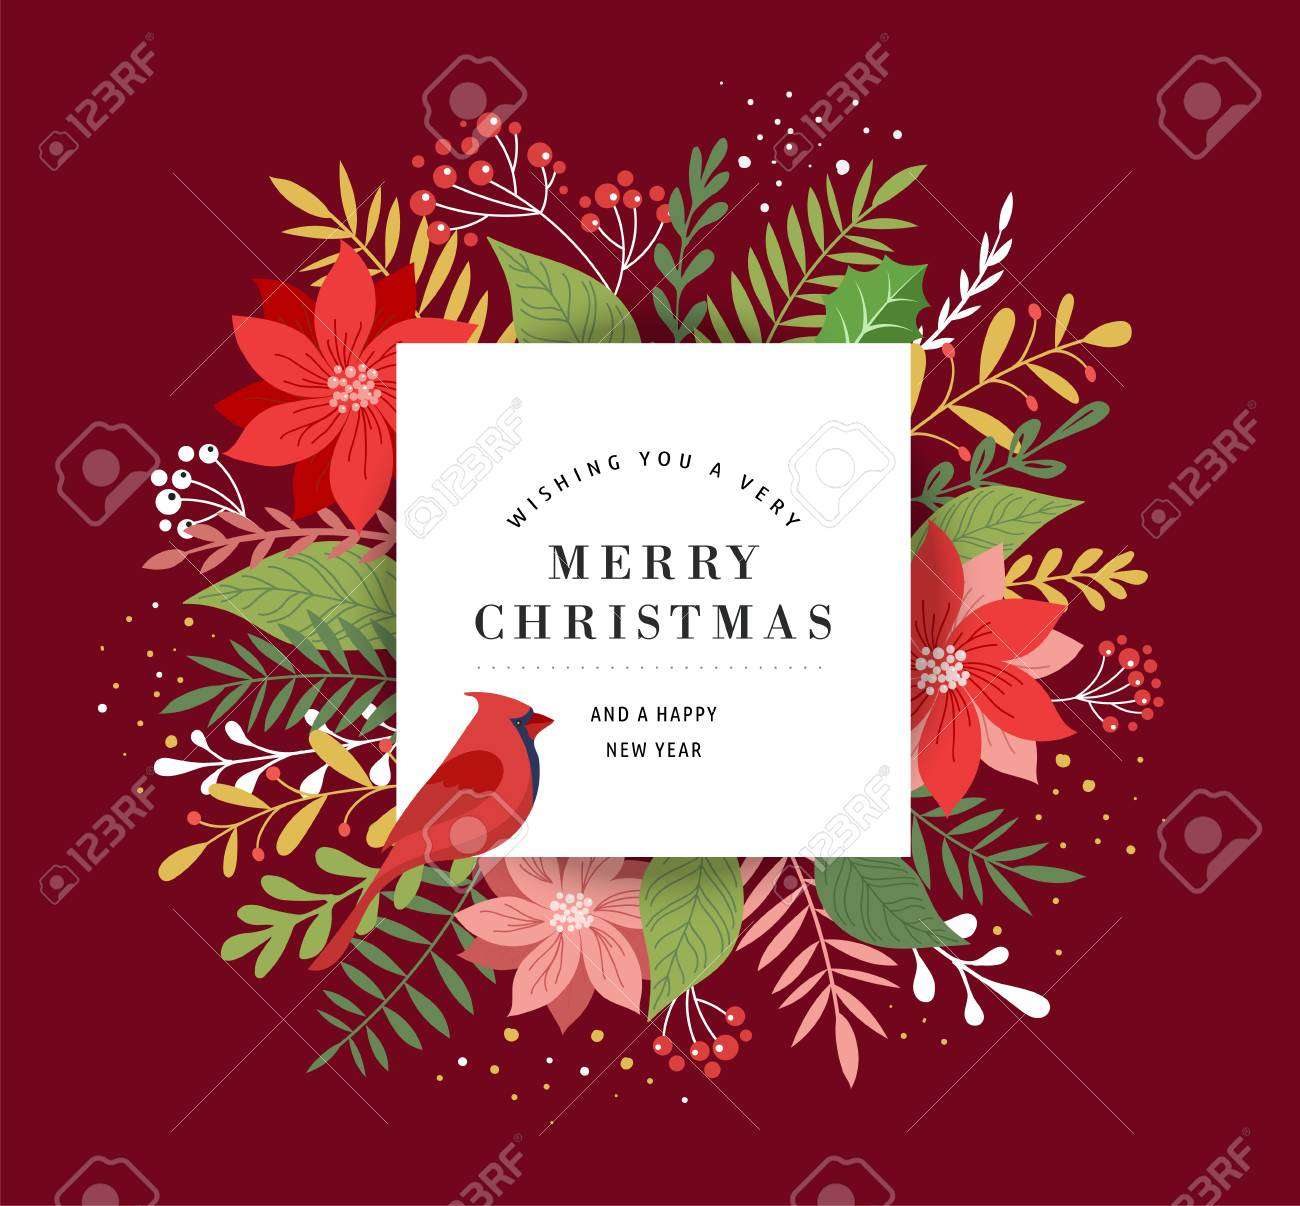 Merry Christmas Greeting Card Template Banner And Background